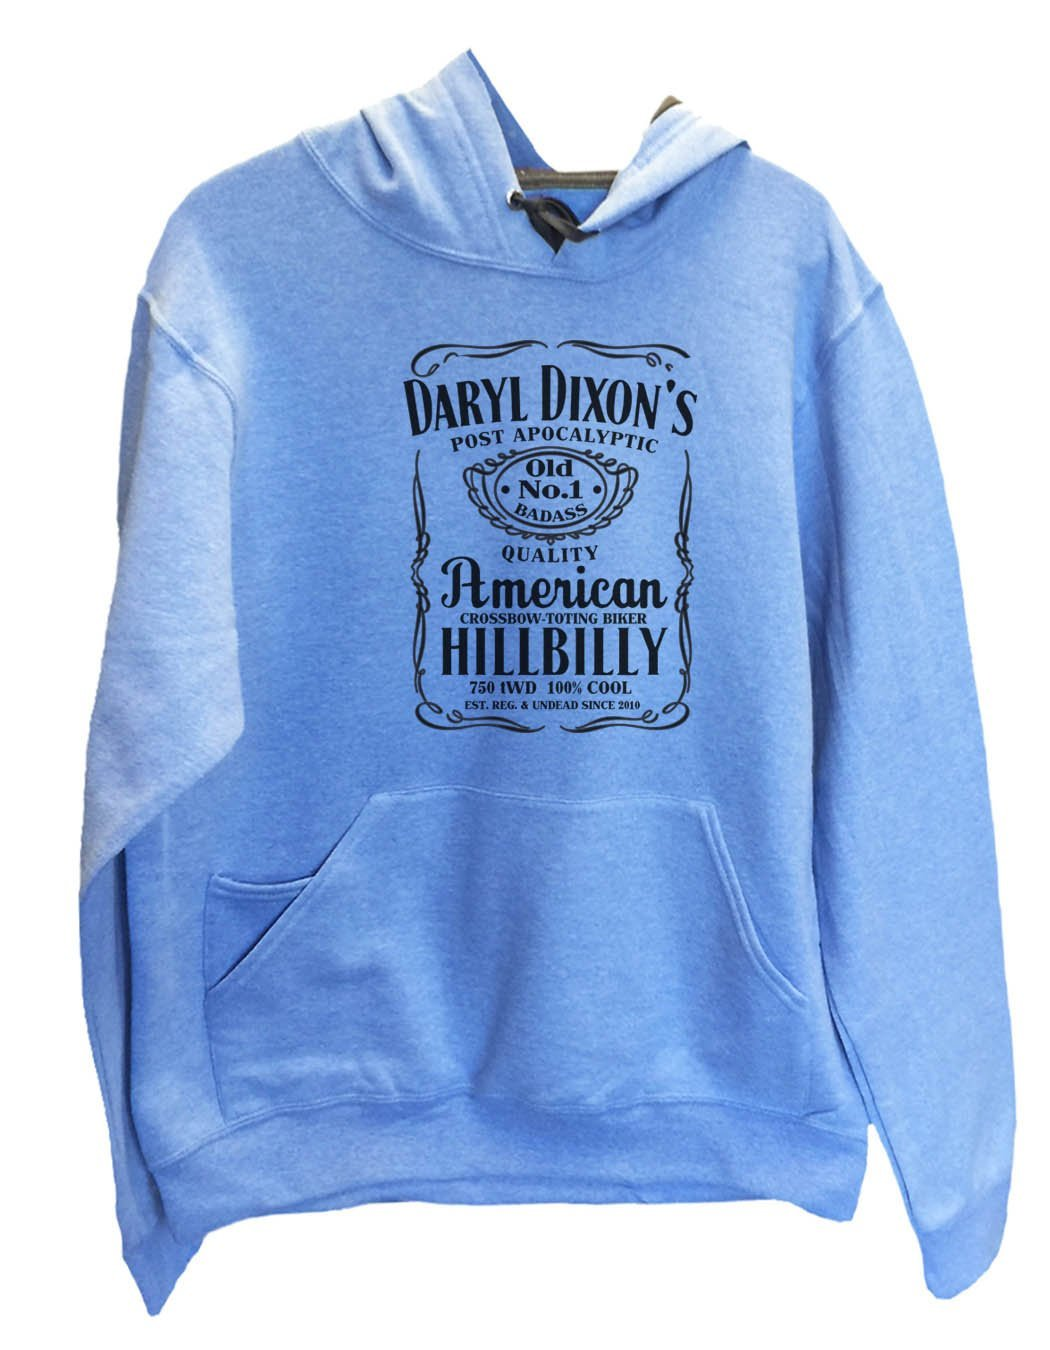 UNISEX HOODIE - Daryl Dixon's American Hillbilly - FUNNY MENS AND WOMENS HOODED SWEATSHIRTS - 2309 Funny Shirt Small / North Carolina Blue